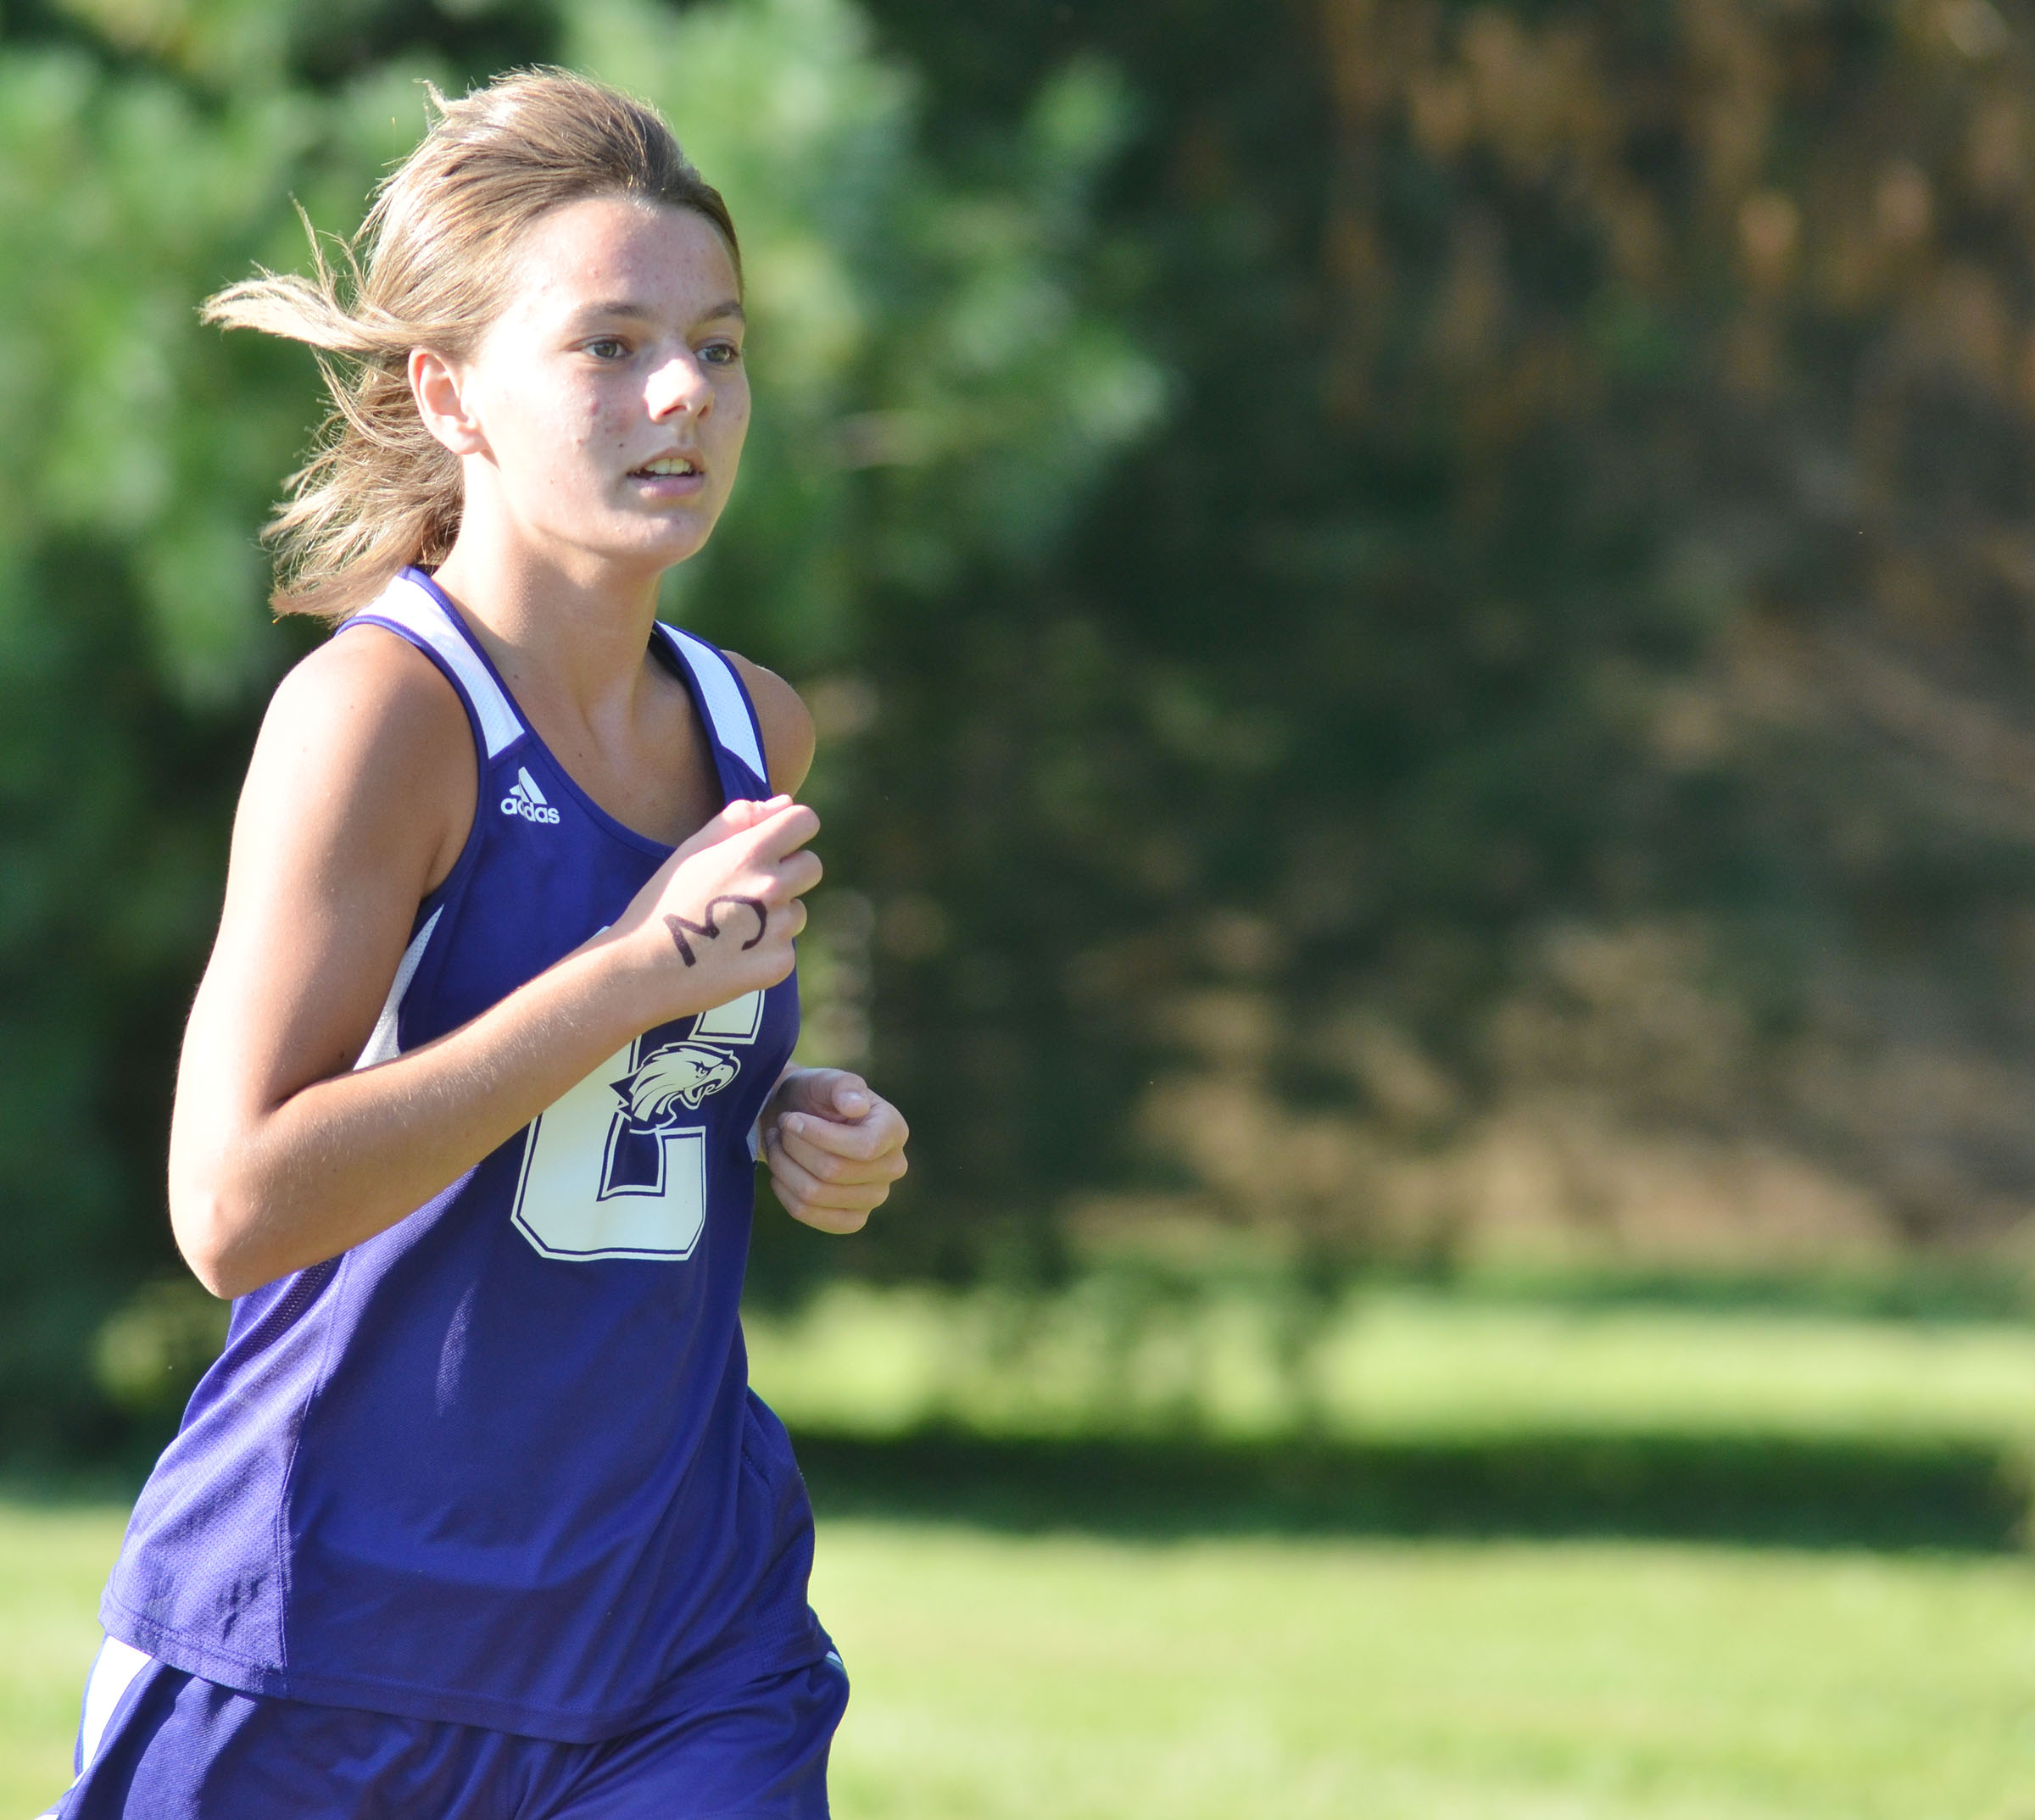 CHS senior Kyrsten Hill was the top finisher for her team at the Heartland Athletic Conference meet on Thursday, Oct. 13. She was named to the conference all-runner team.